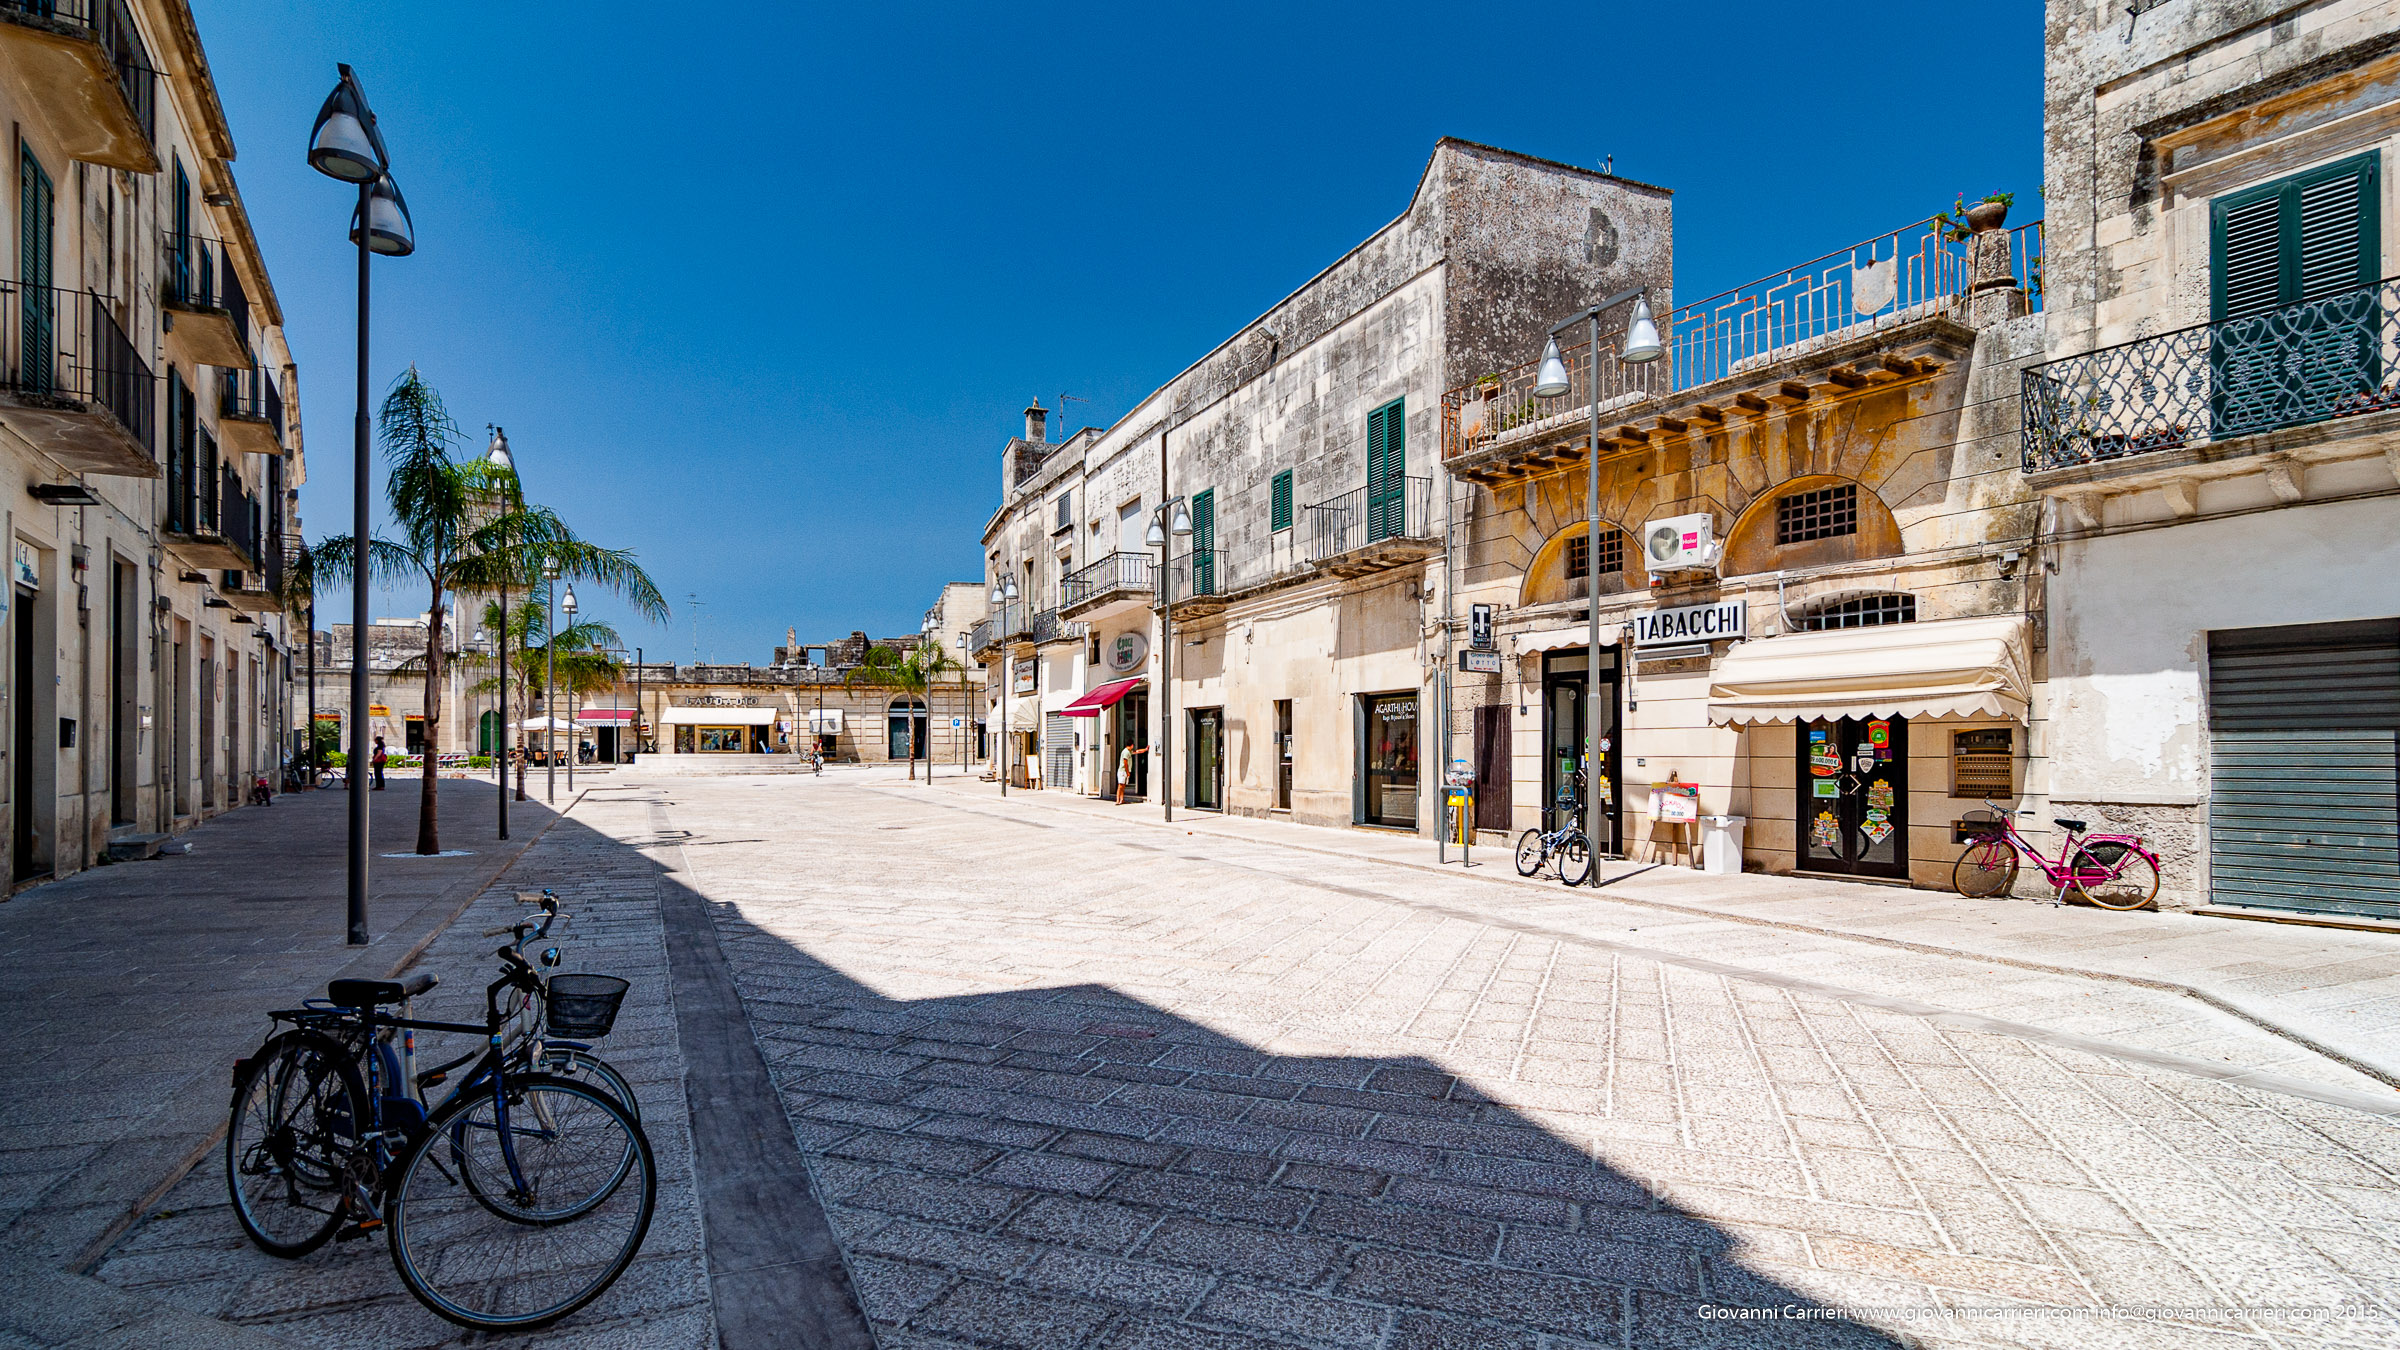 Photographs of Salento